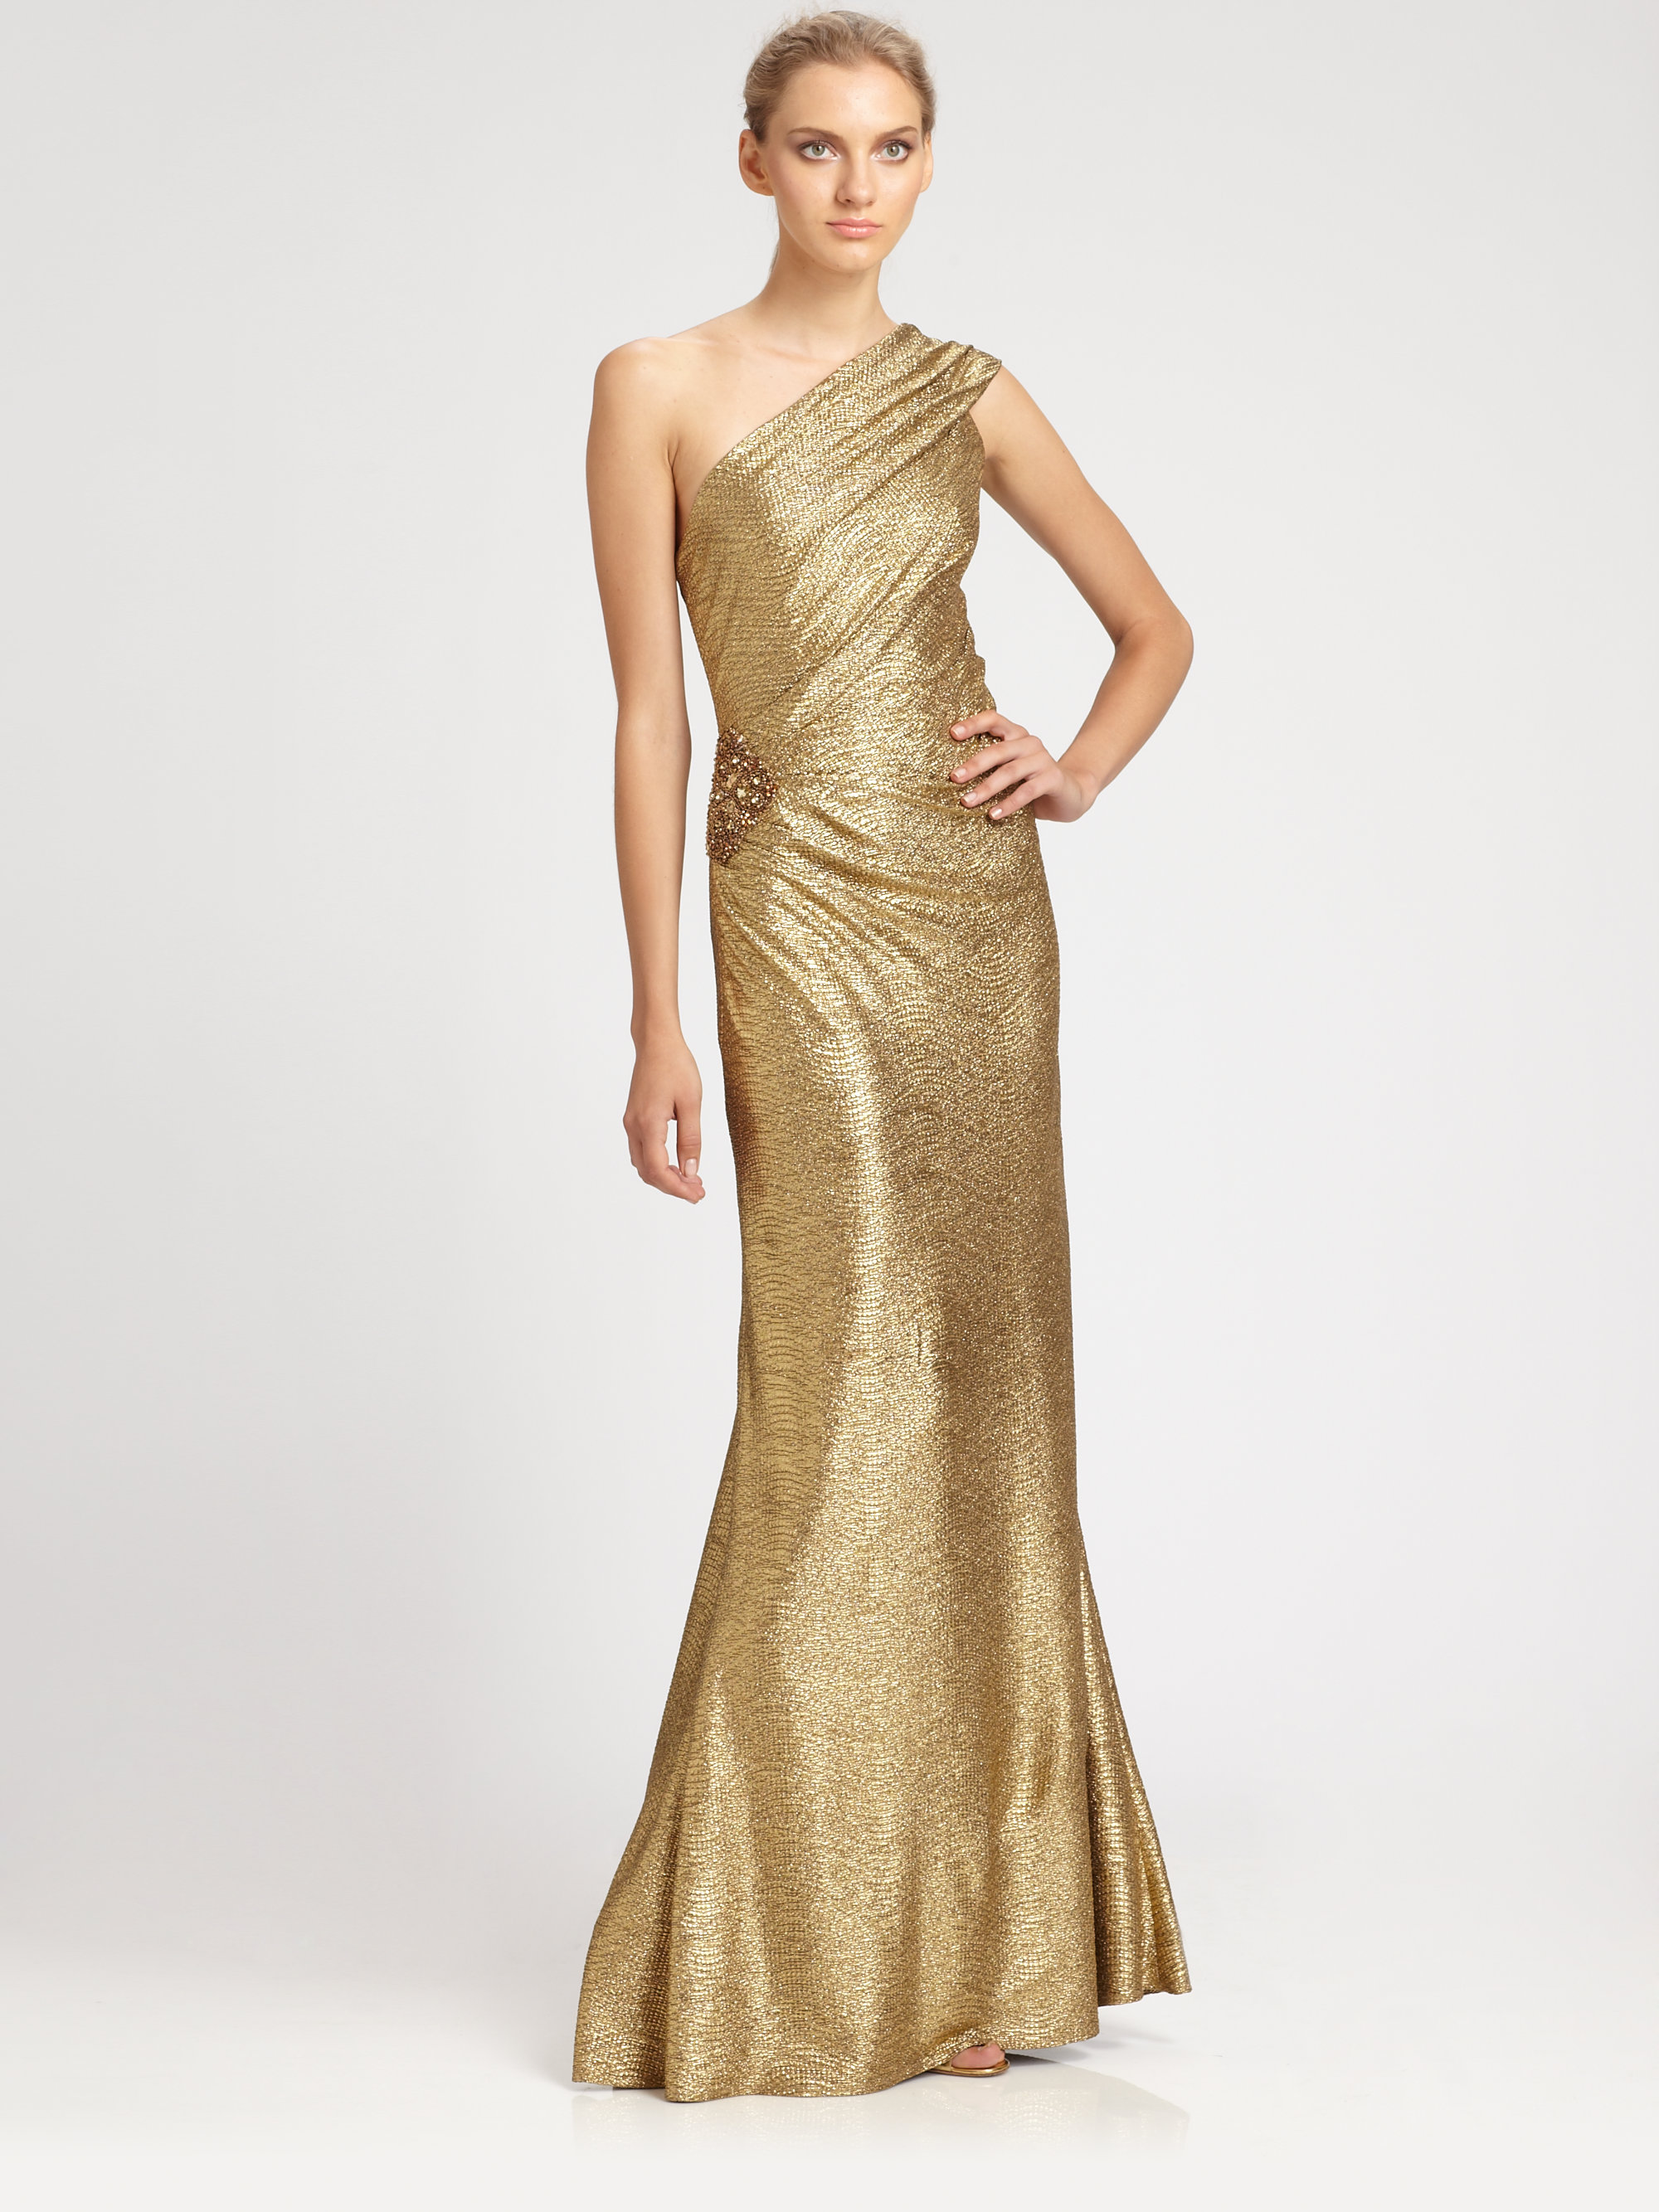 Amazing David Meister Gold Gown Image Collection - Top Wedding Gowns ...